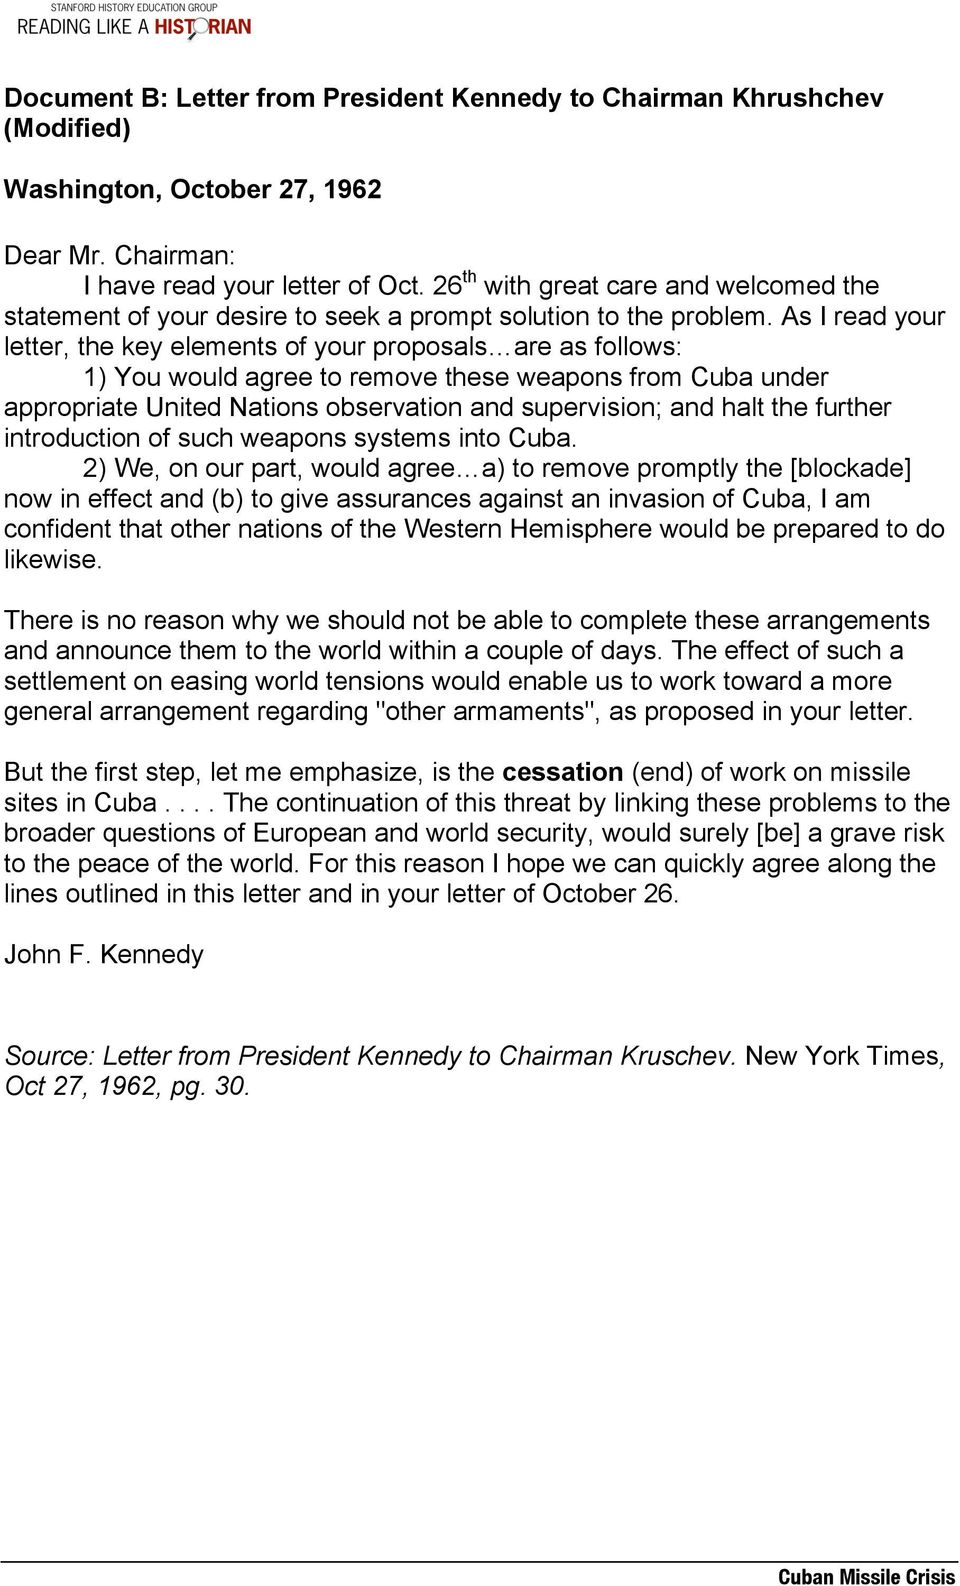 As I read your letter, the key elements of your proposals are as follows: 1) You would agree to remove these weapons from Cuba under appropriate United Nations observation and supervision; and halt